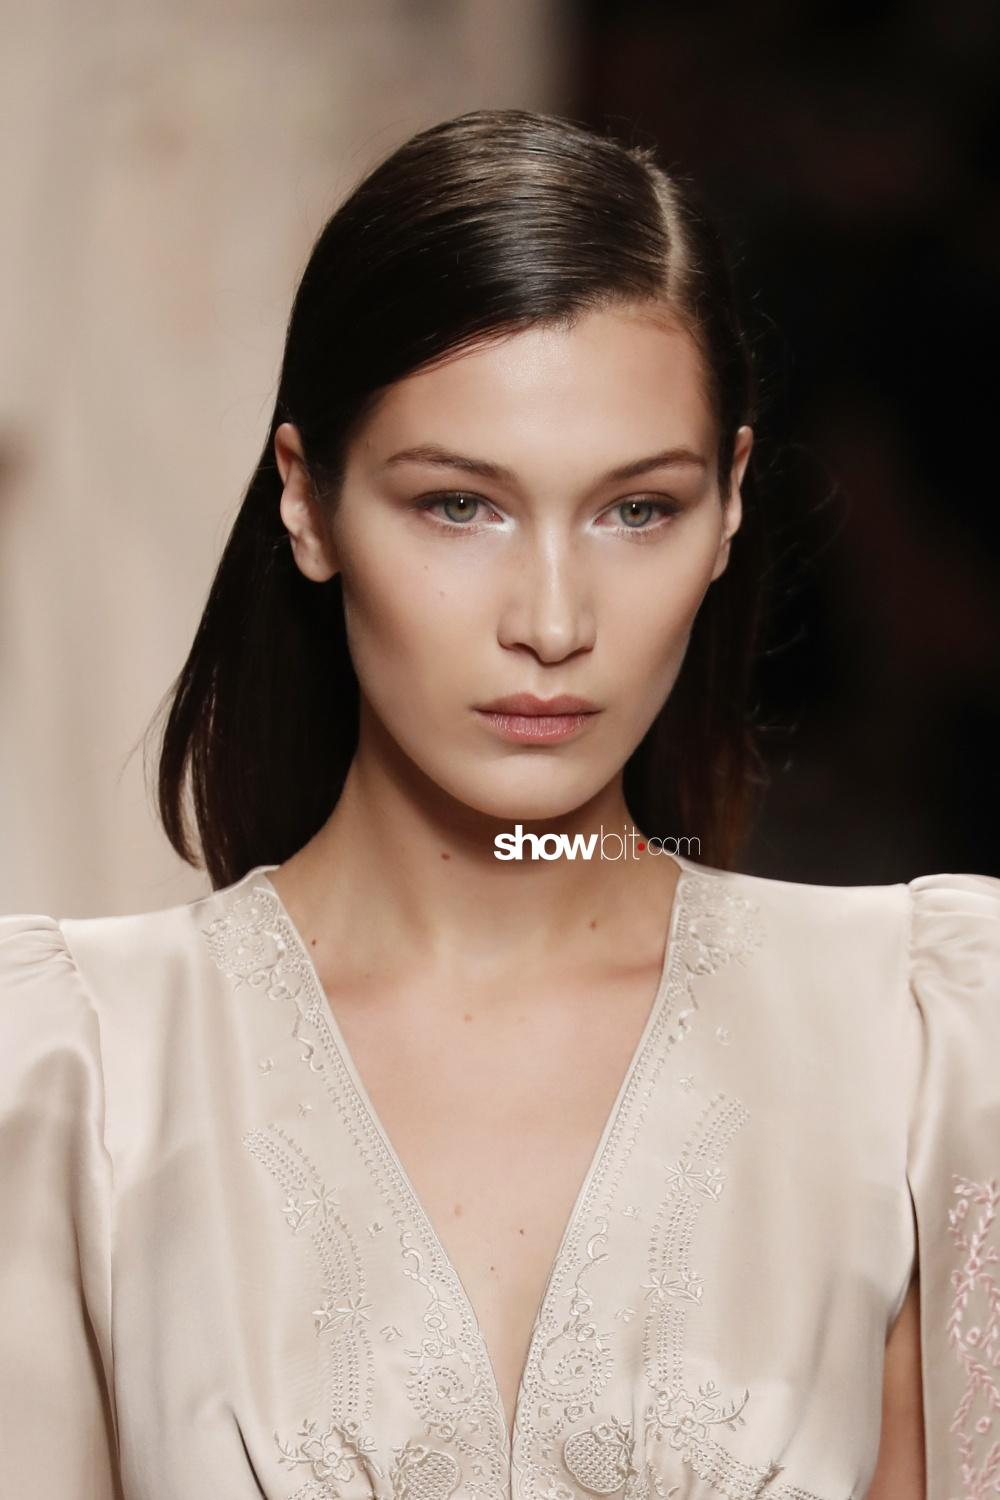 Fendi beauty runway Fall Winter 2018 Milano Bella Hadid